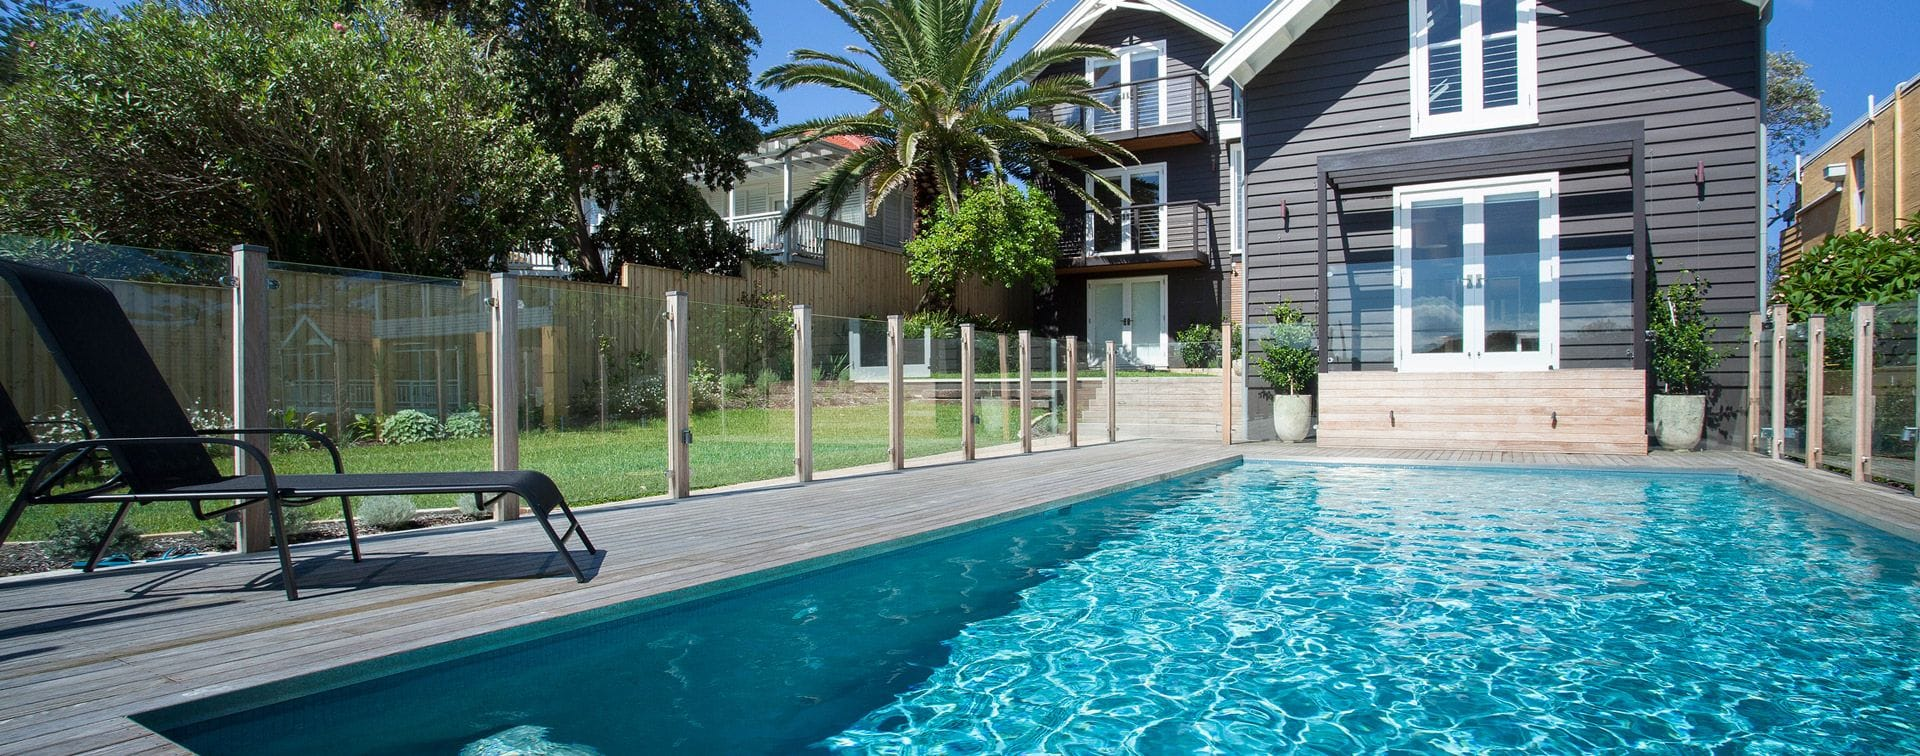 Swimming pool renovations sydney pool builders award for Swimming pool builders